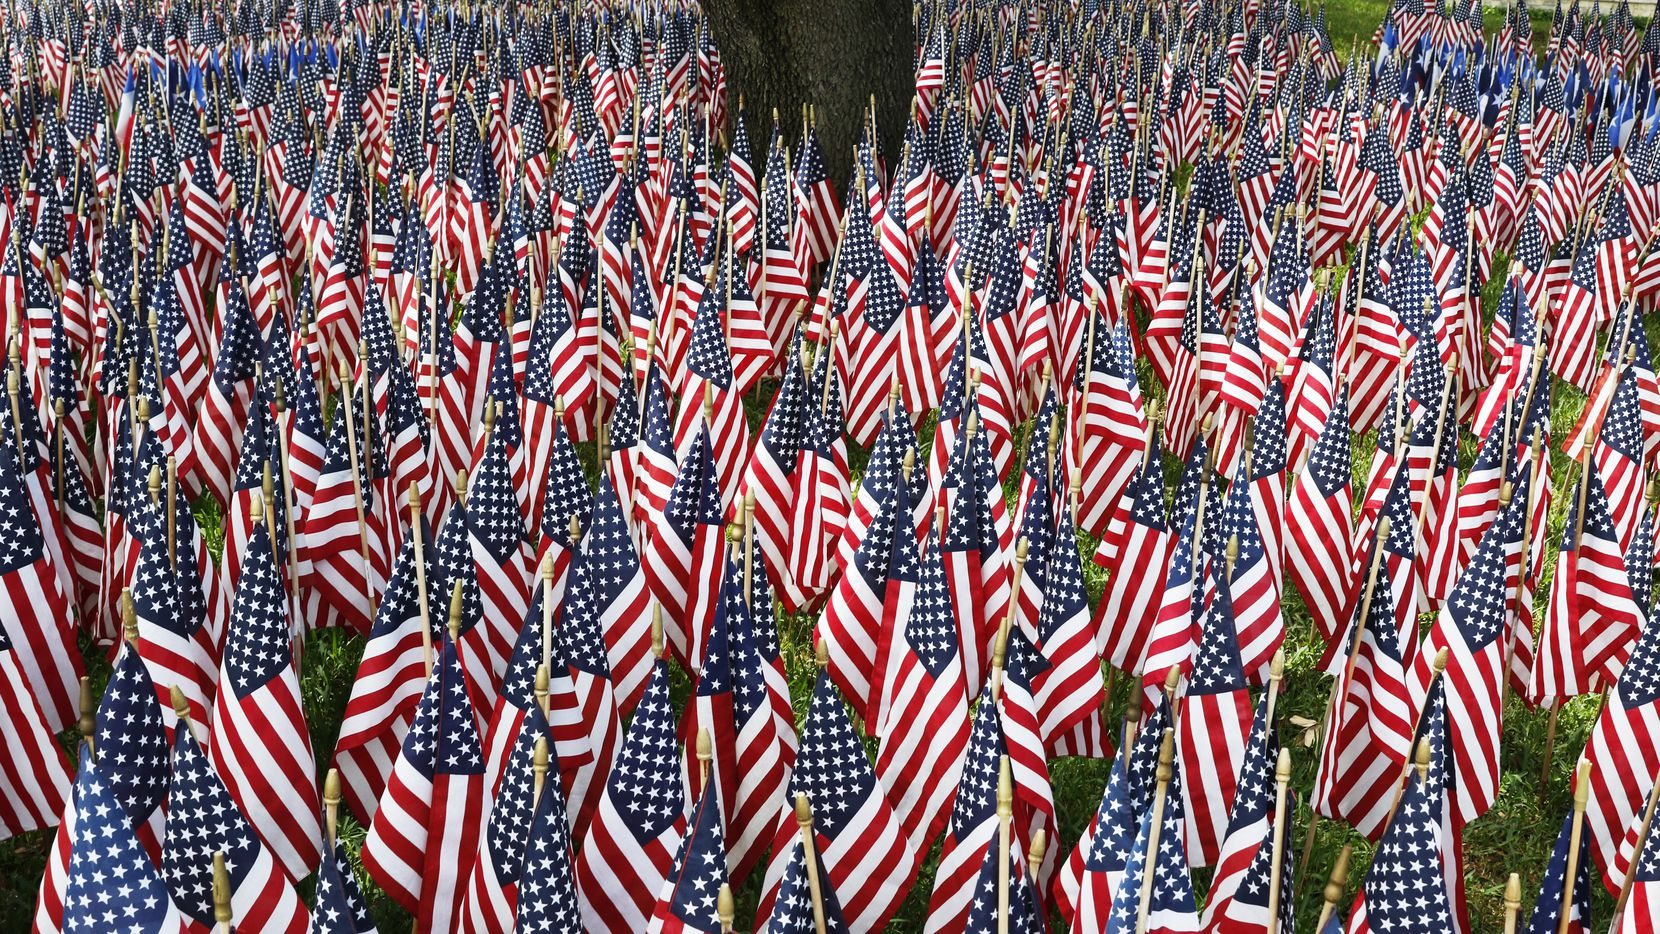 Hundreds of flags were placed at the entrance to Restland Memorial Park for the 76th Annual Memorial Day Service on Monday, May 30, 2016.